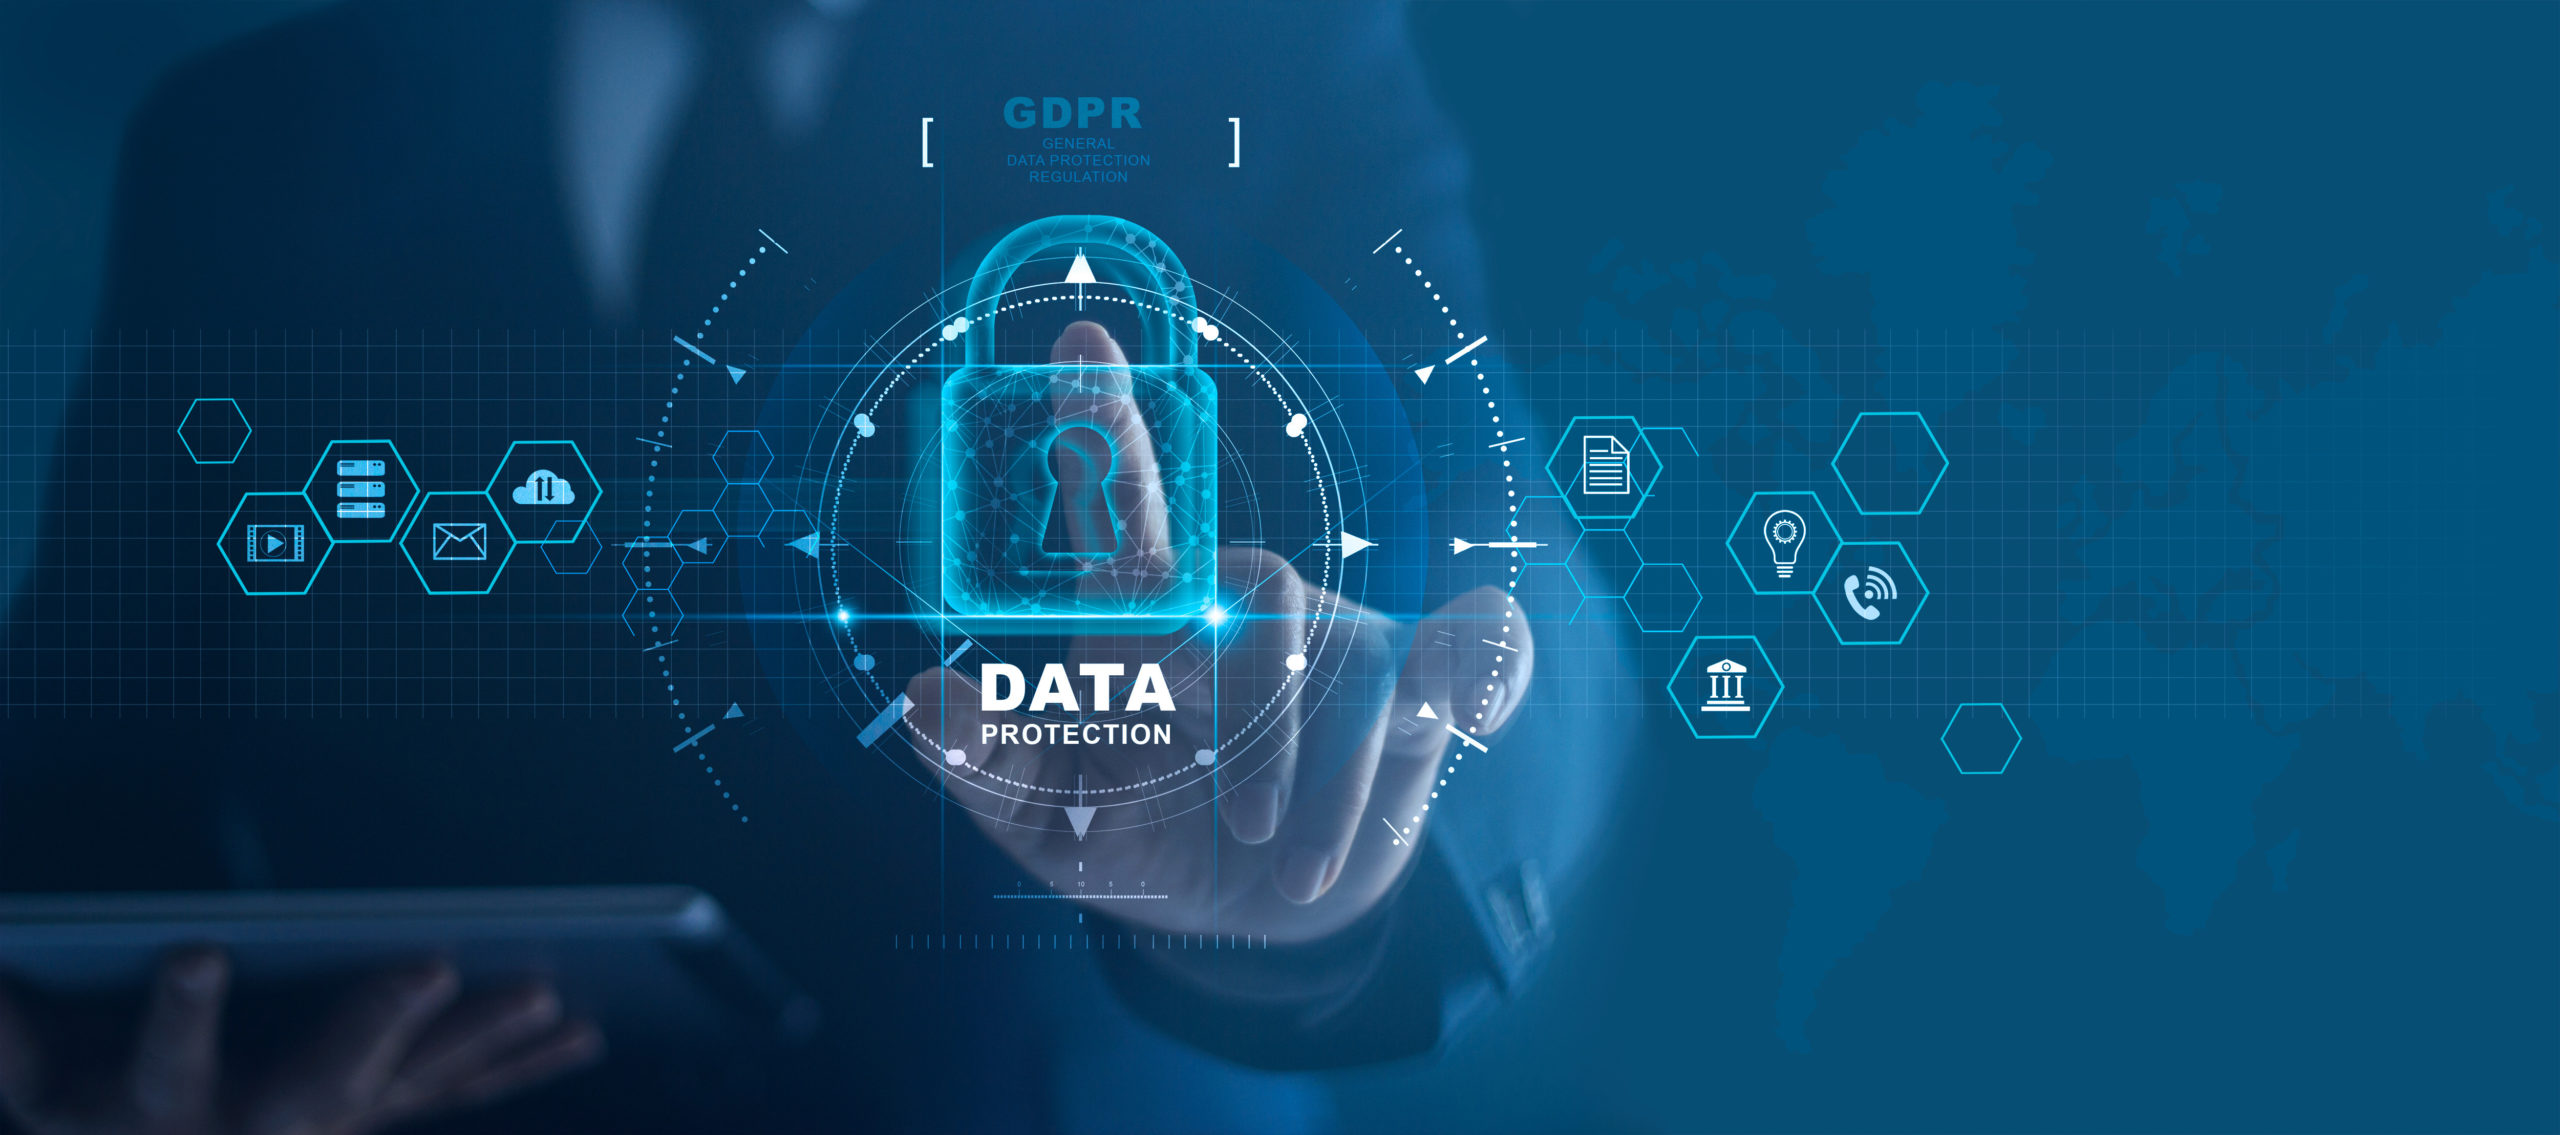 Business man protecting data personal information on tablet and virtual interface. Data protection privacy concept. GDPR. EU. Cyber security network. Padlock icon and internet technology networking connection on digital background.